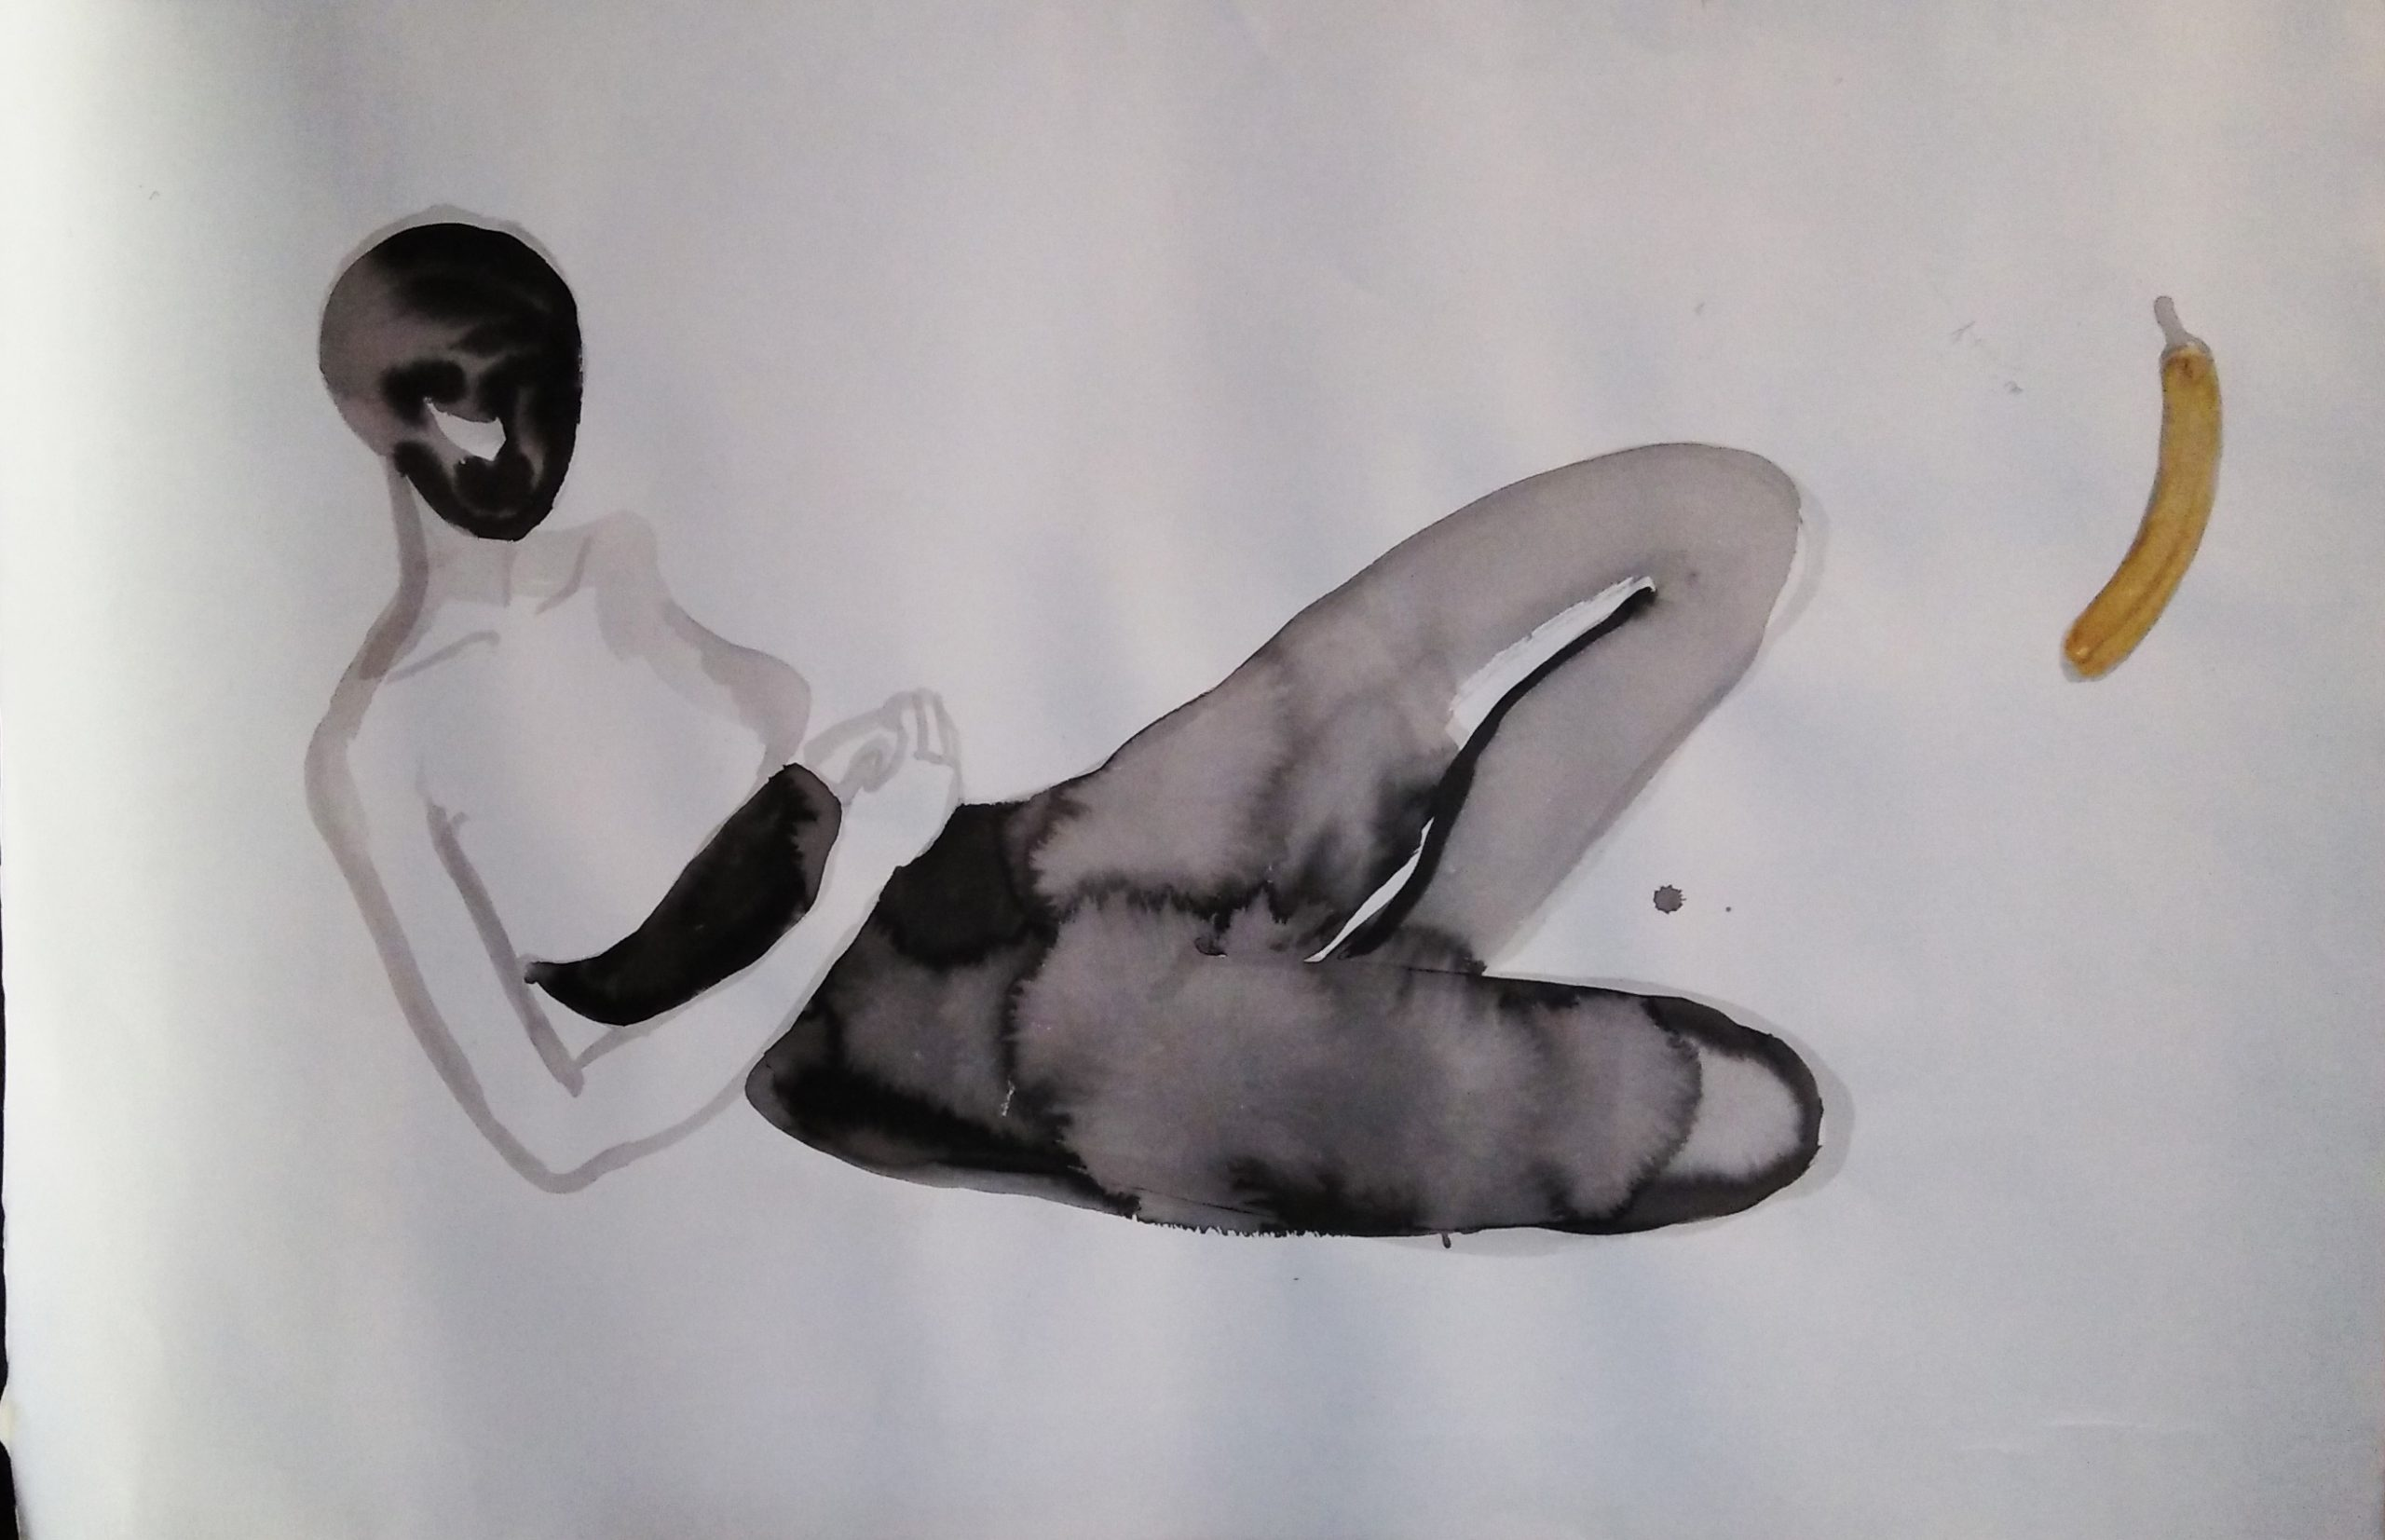 Reclining with a Banana, 2007, inks and acrylics on paper, 115 x 75 cm